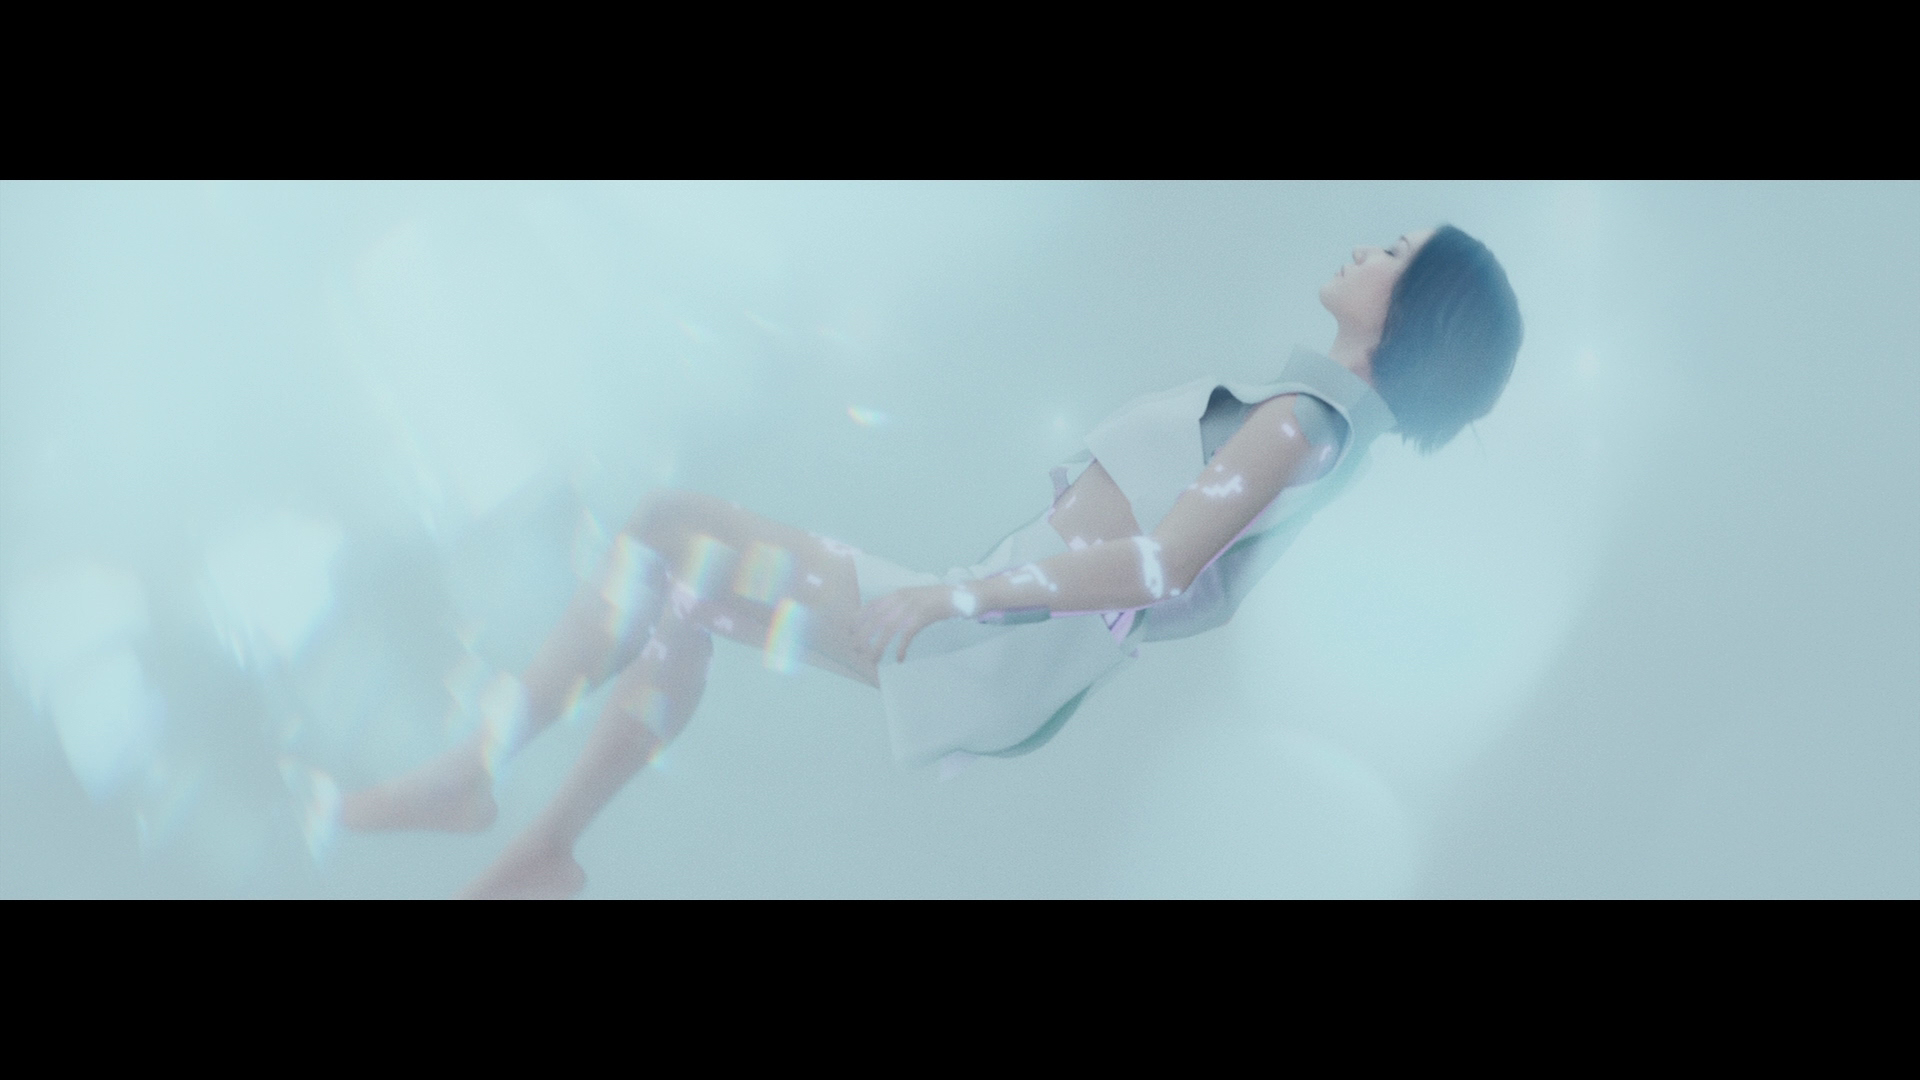 20180823.1555.3 Perfume - If you wanna (PV) (Blu-Ray) (JPOP.ru).m2ts 3.png